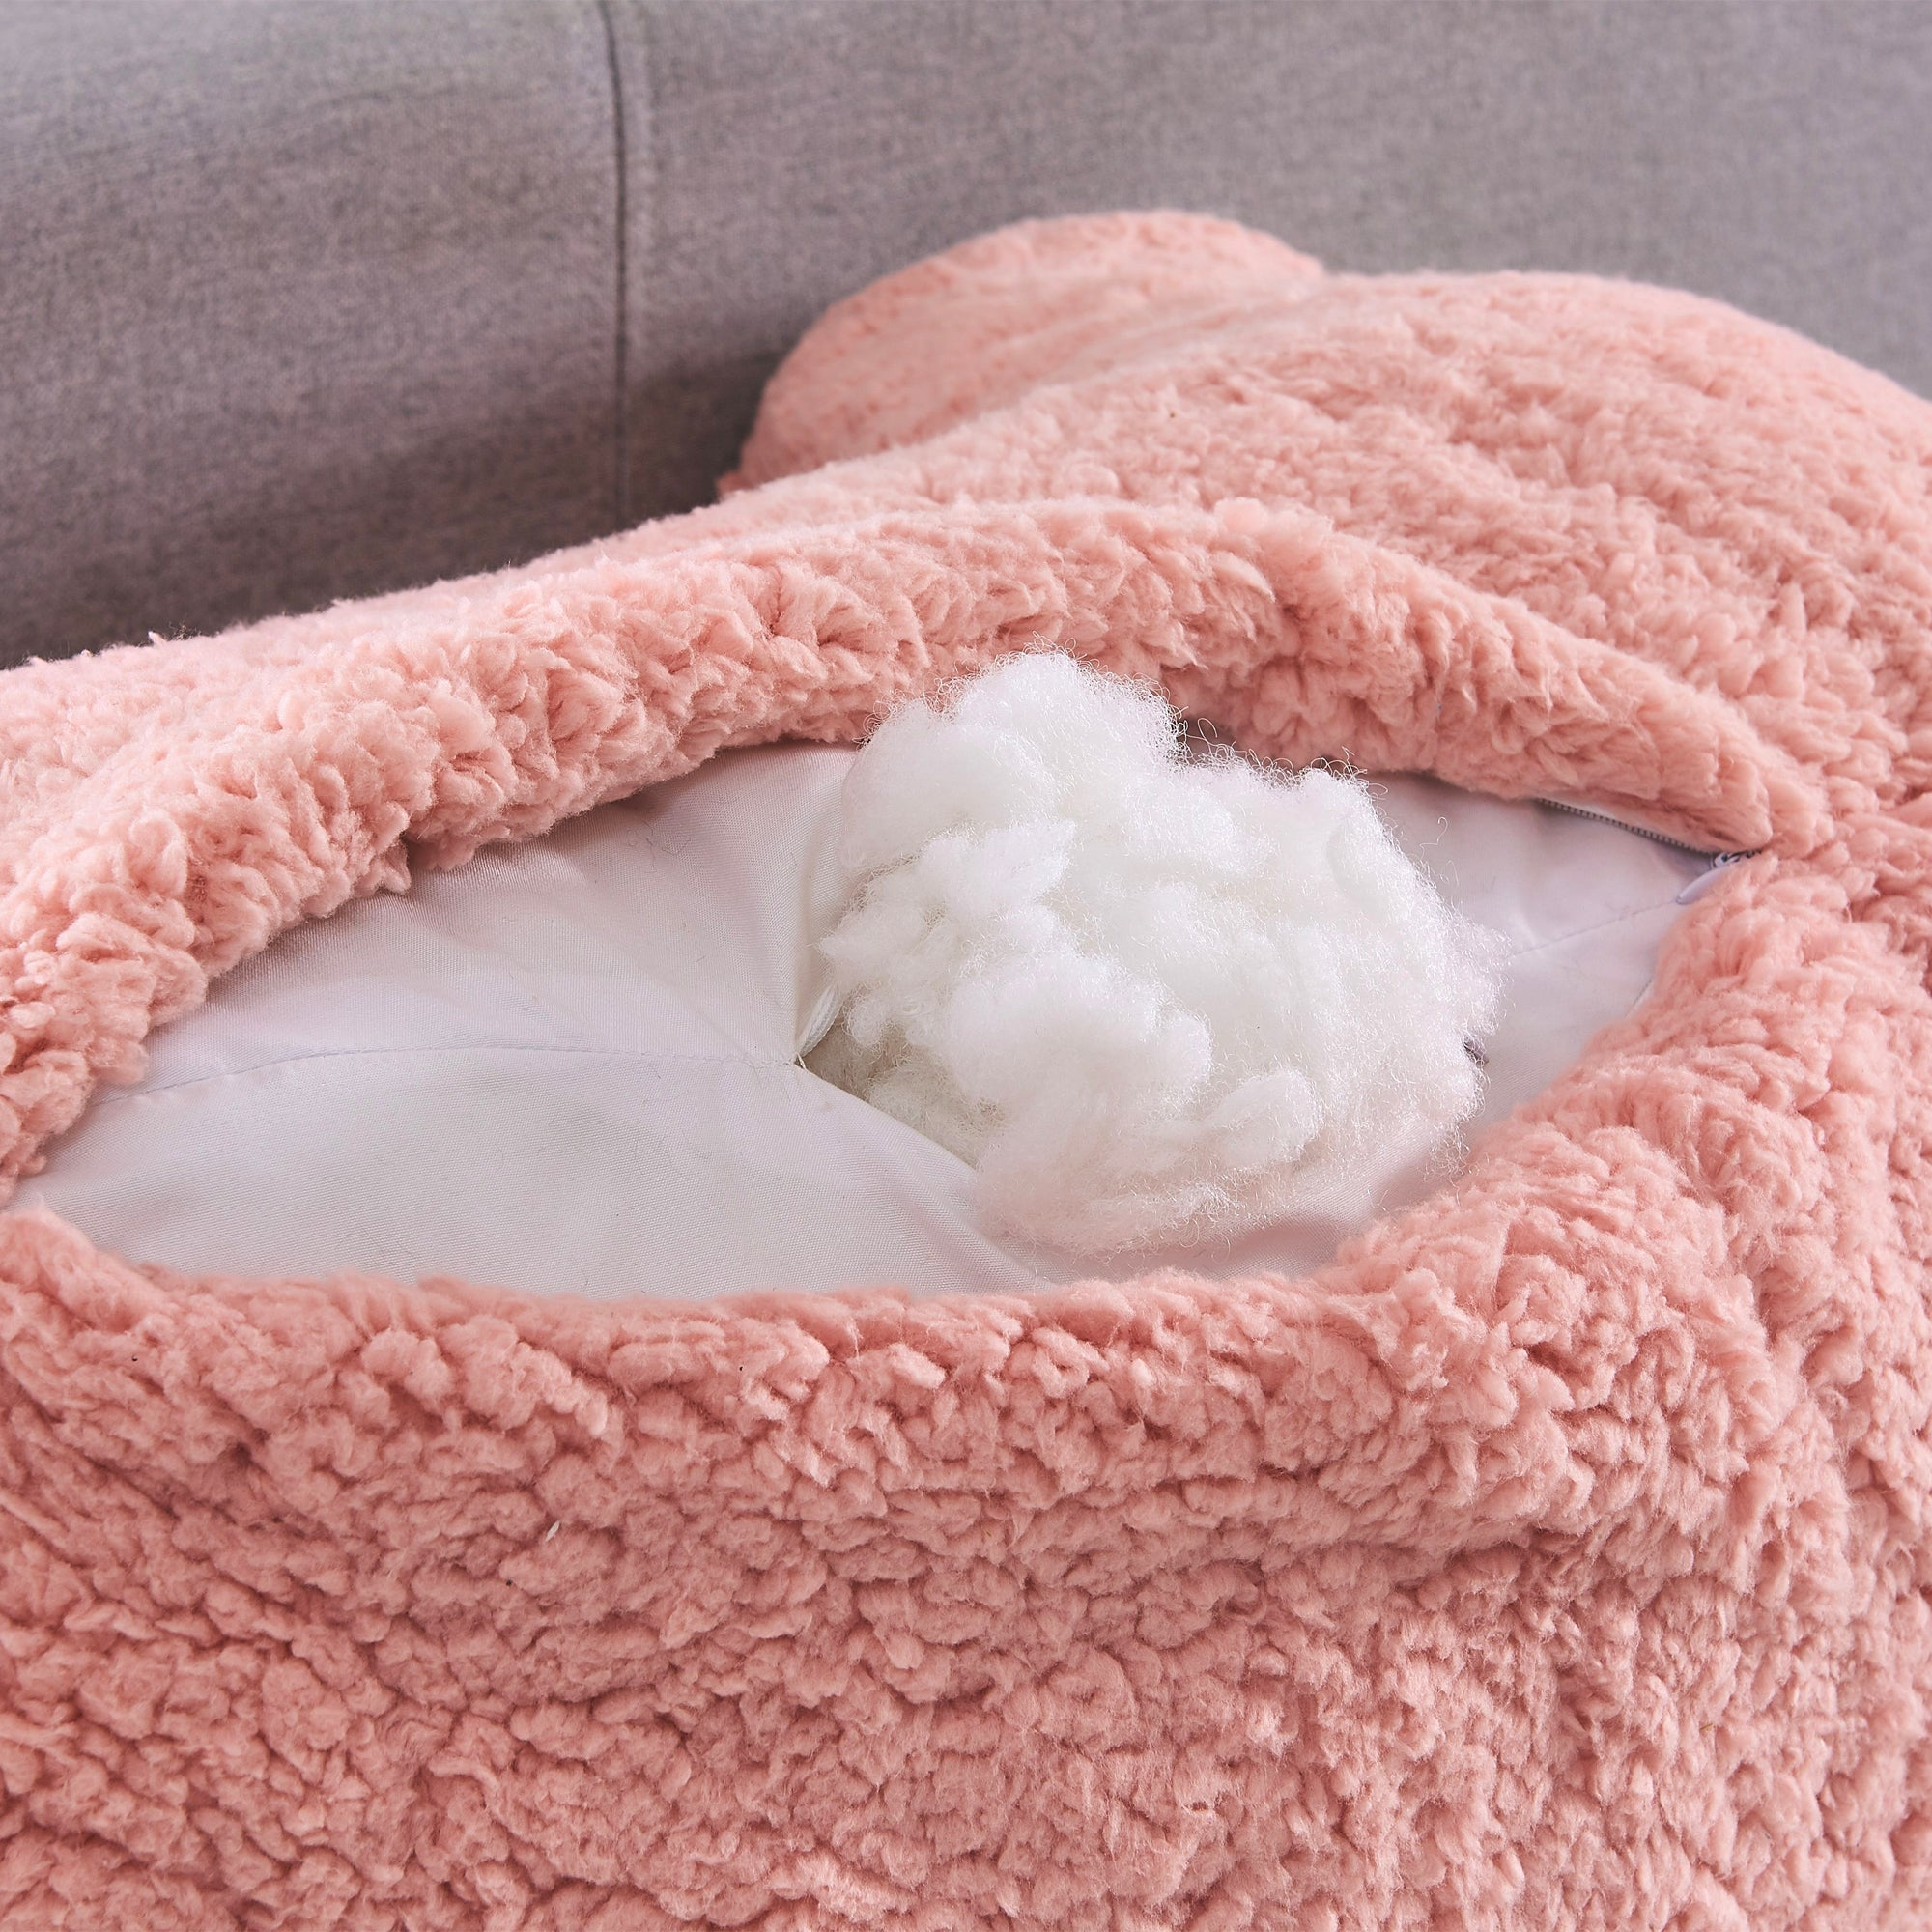 A closeup of the fleece inside a pink backrest reading pillow.